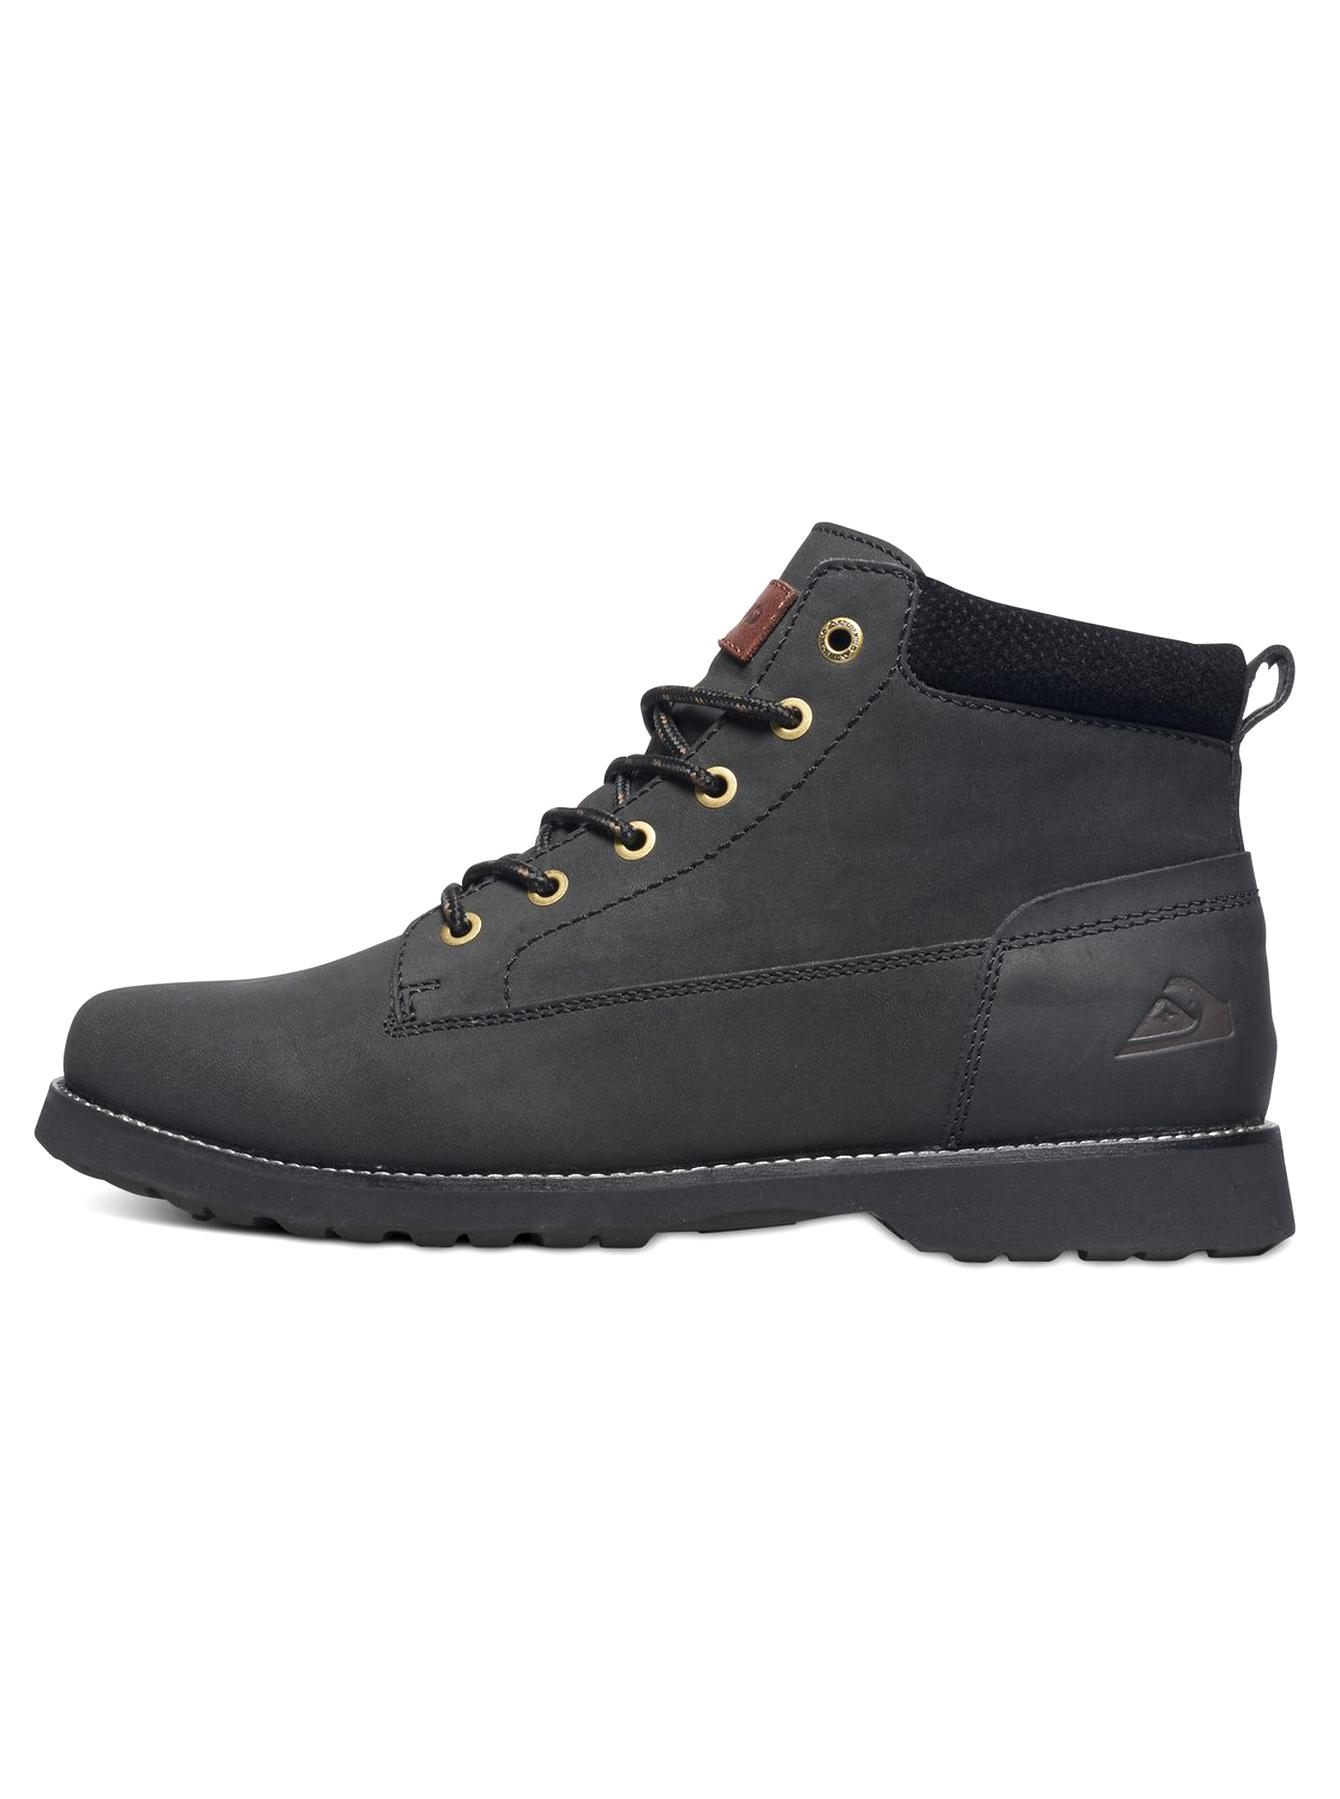 quiksilver boots for sale